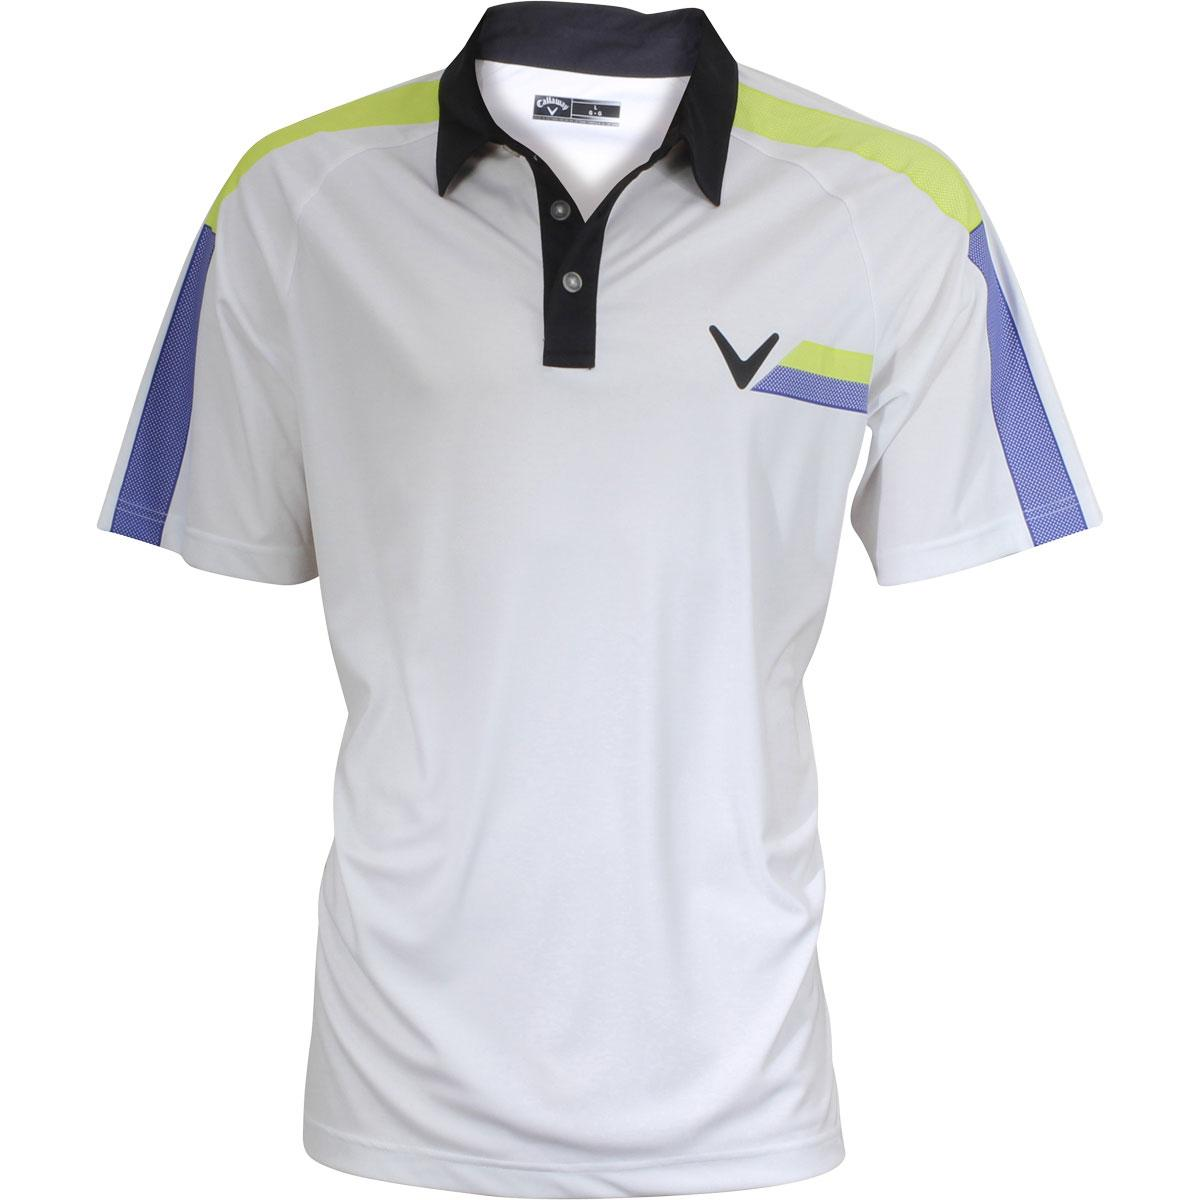 Image of Callaway Men's Printed Block Polo Short Sleeve Shirt - Wild Lime - Classic Fit